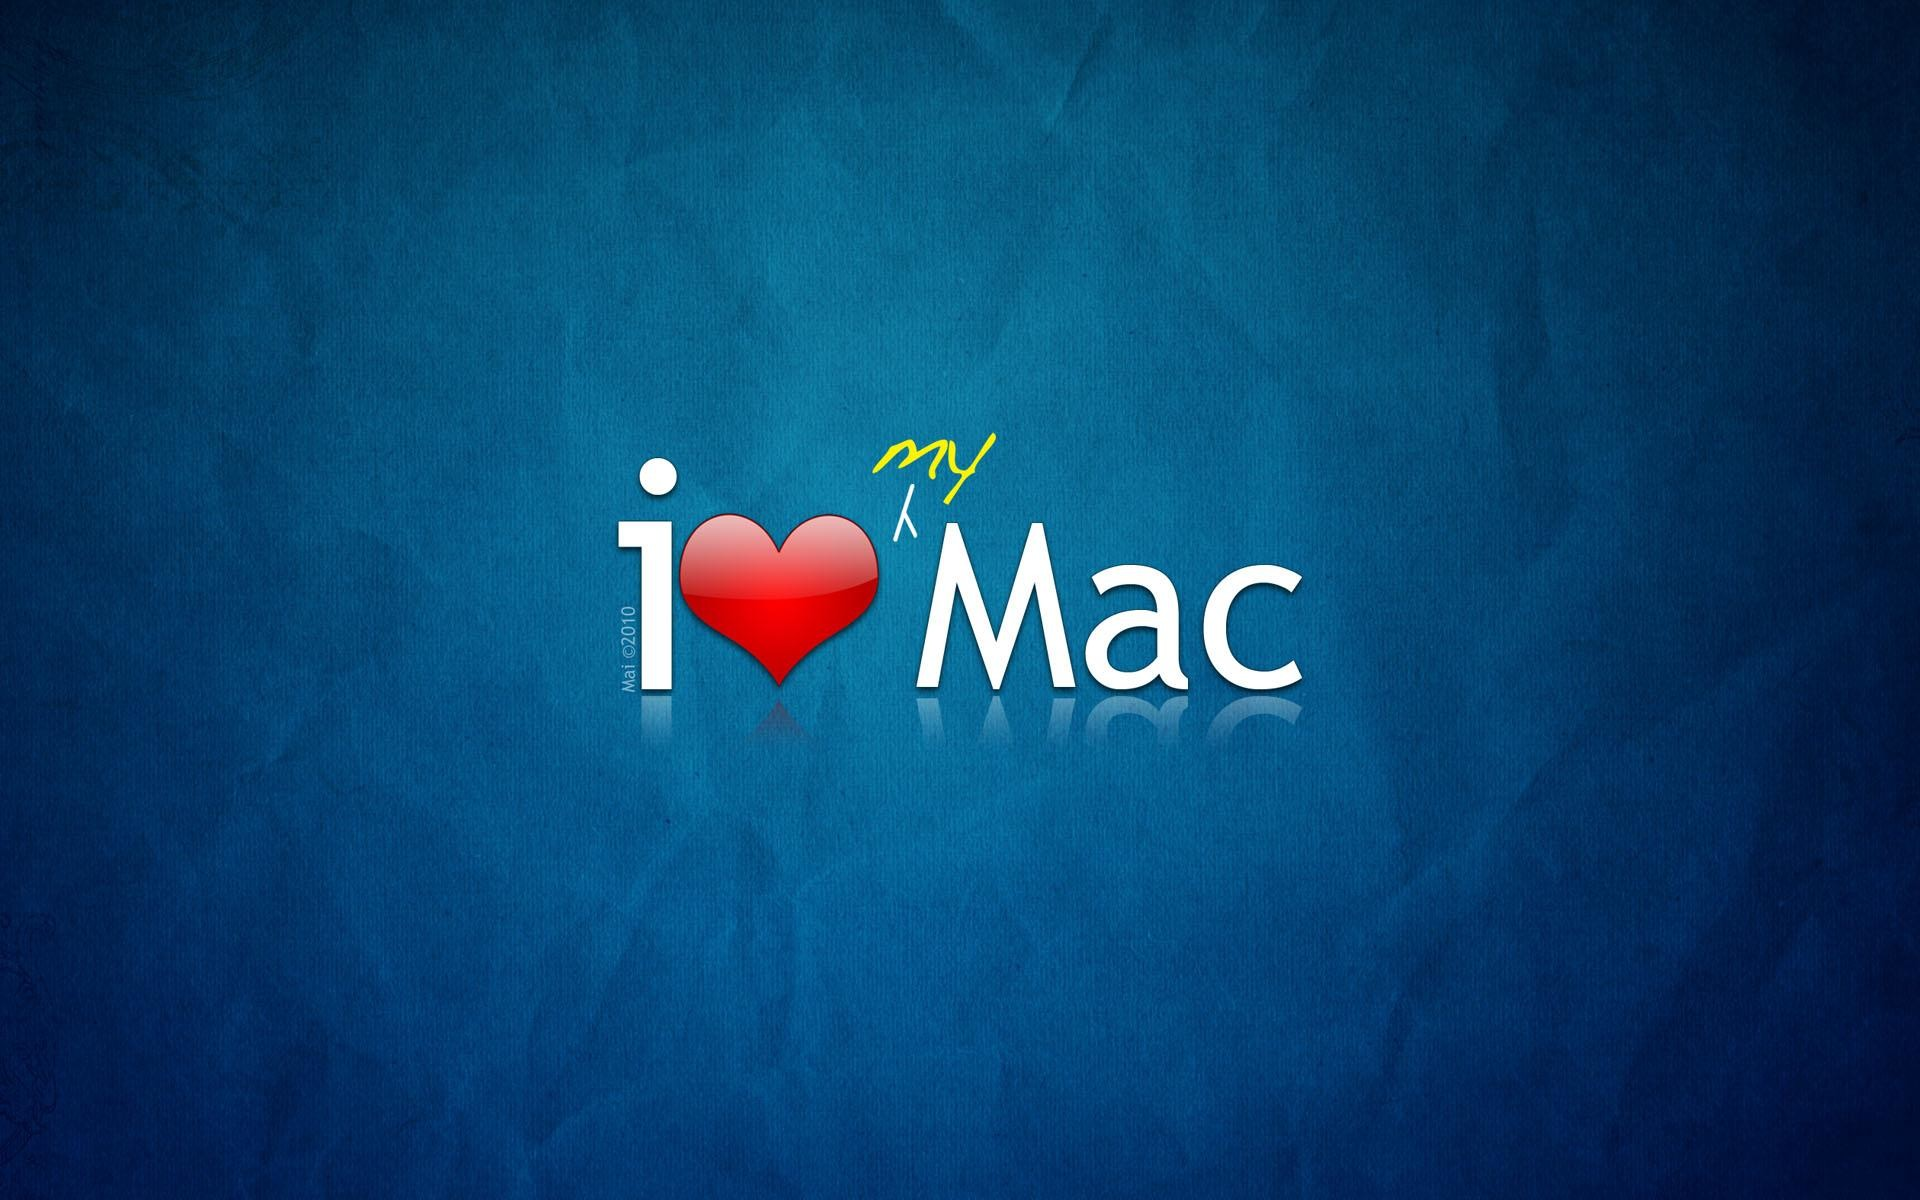 Wallpaper For Mac Mac Live Wallpapers Free High Definition